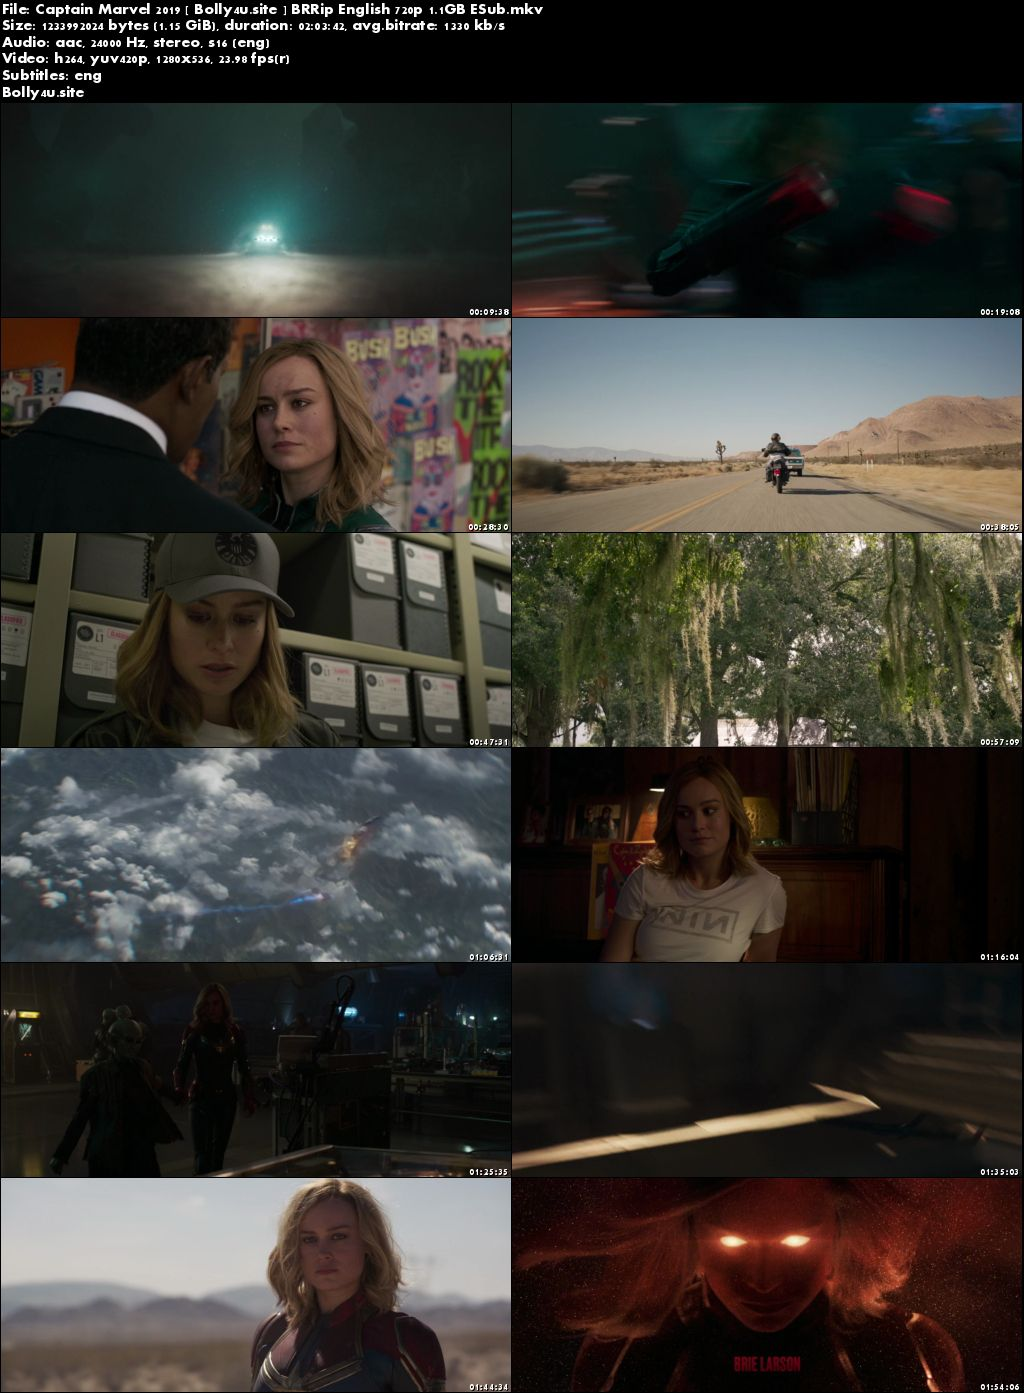 Captain Marvel 2019 BRRip 1.1GB English 720p ESub Download